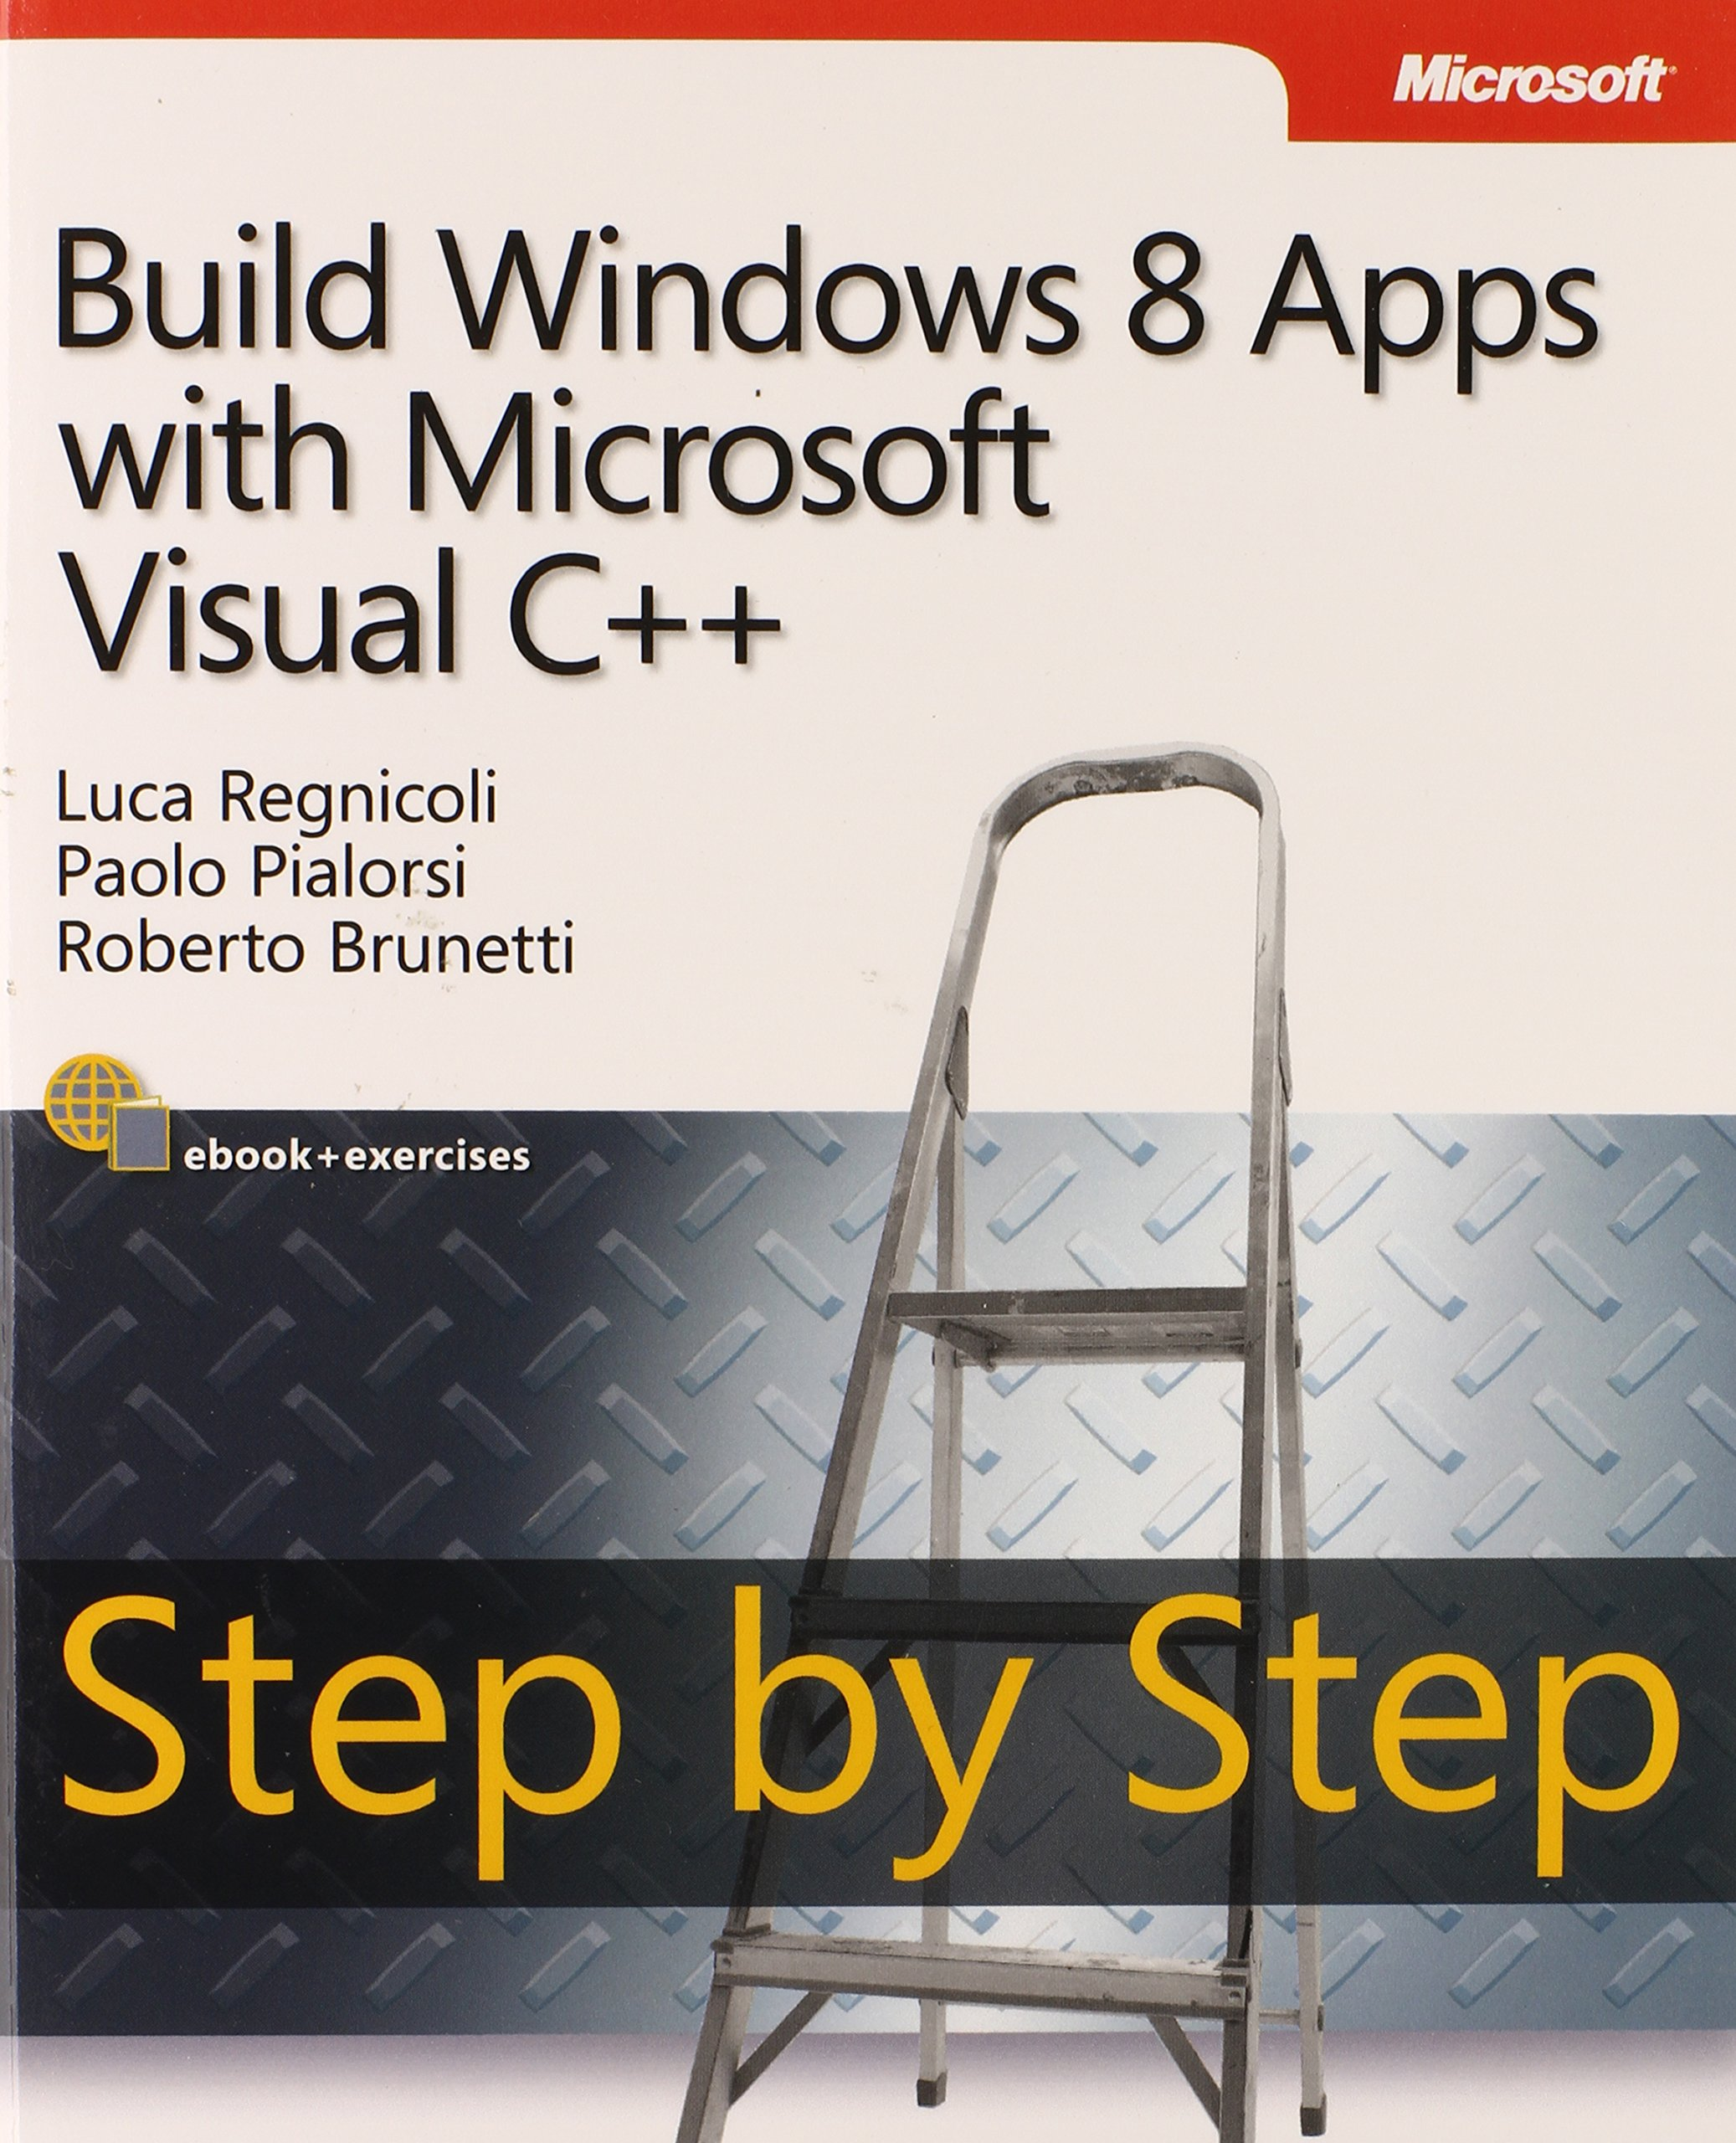 Build Windows 8 Apps with Microsoft Visual C++ Step by Step (Step by Step Developer)